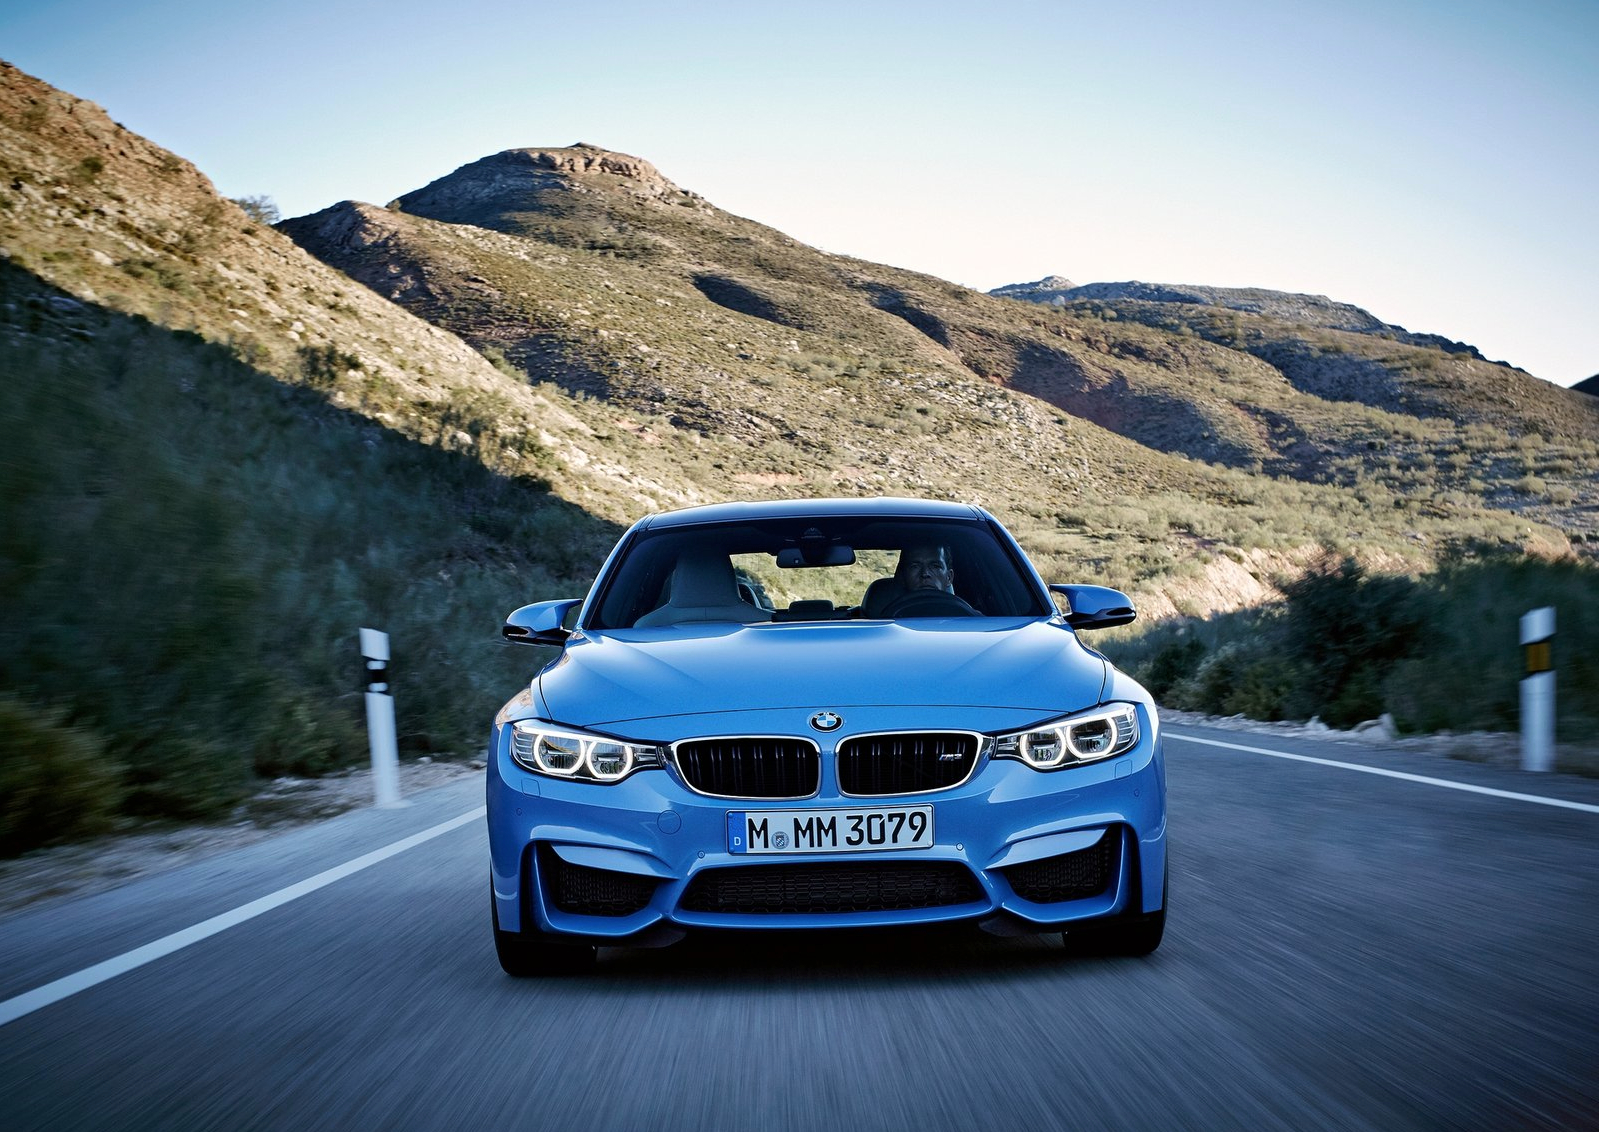 2015 bmw m3 pricing shows 5 350 increase over predecessor autoevolution. Black Bedroom Furniture Sets. Home Design Ideas